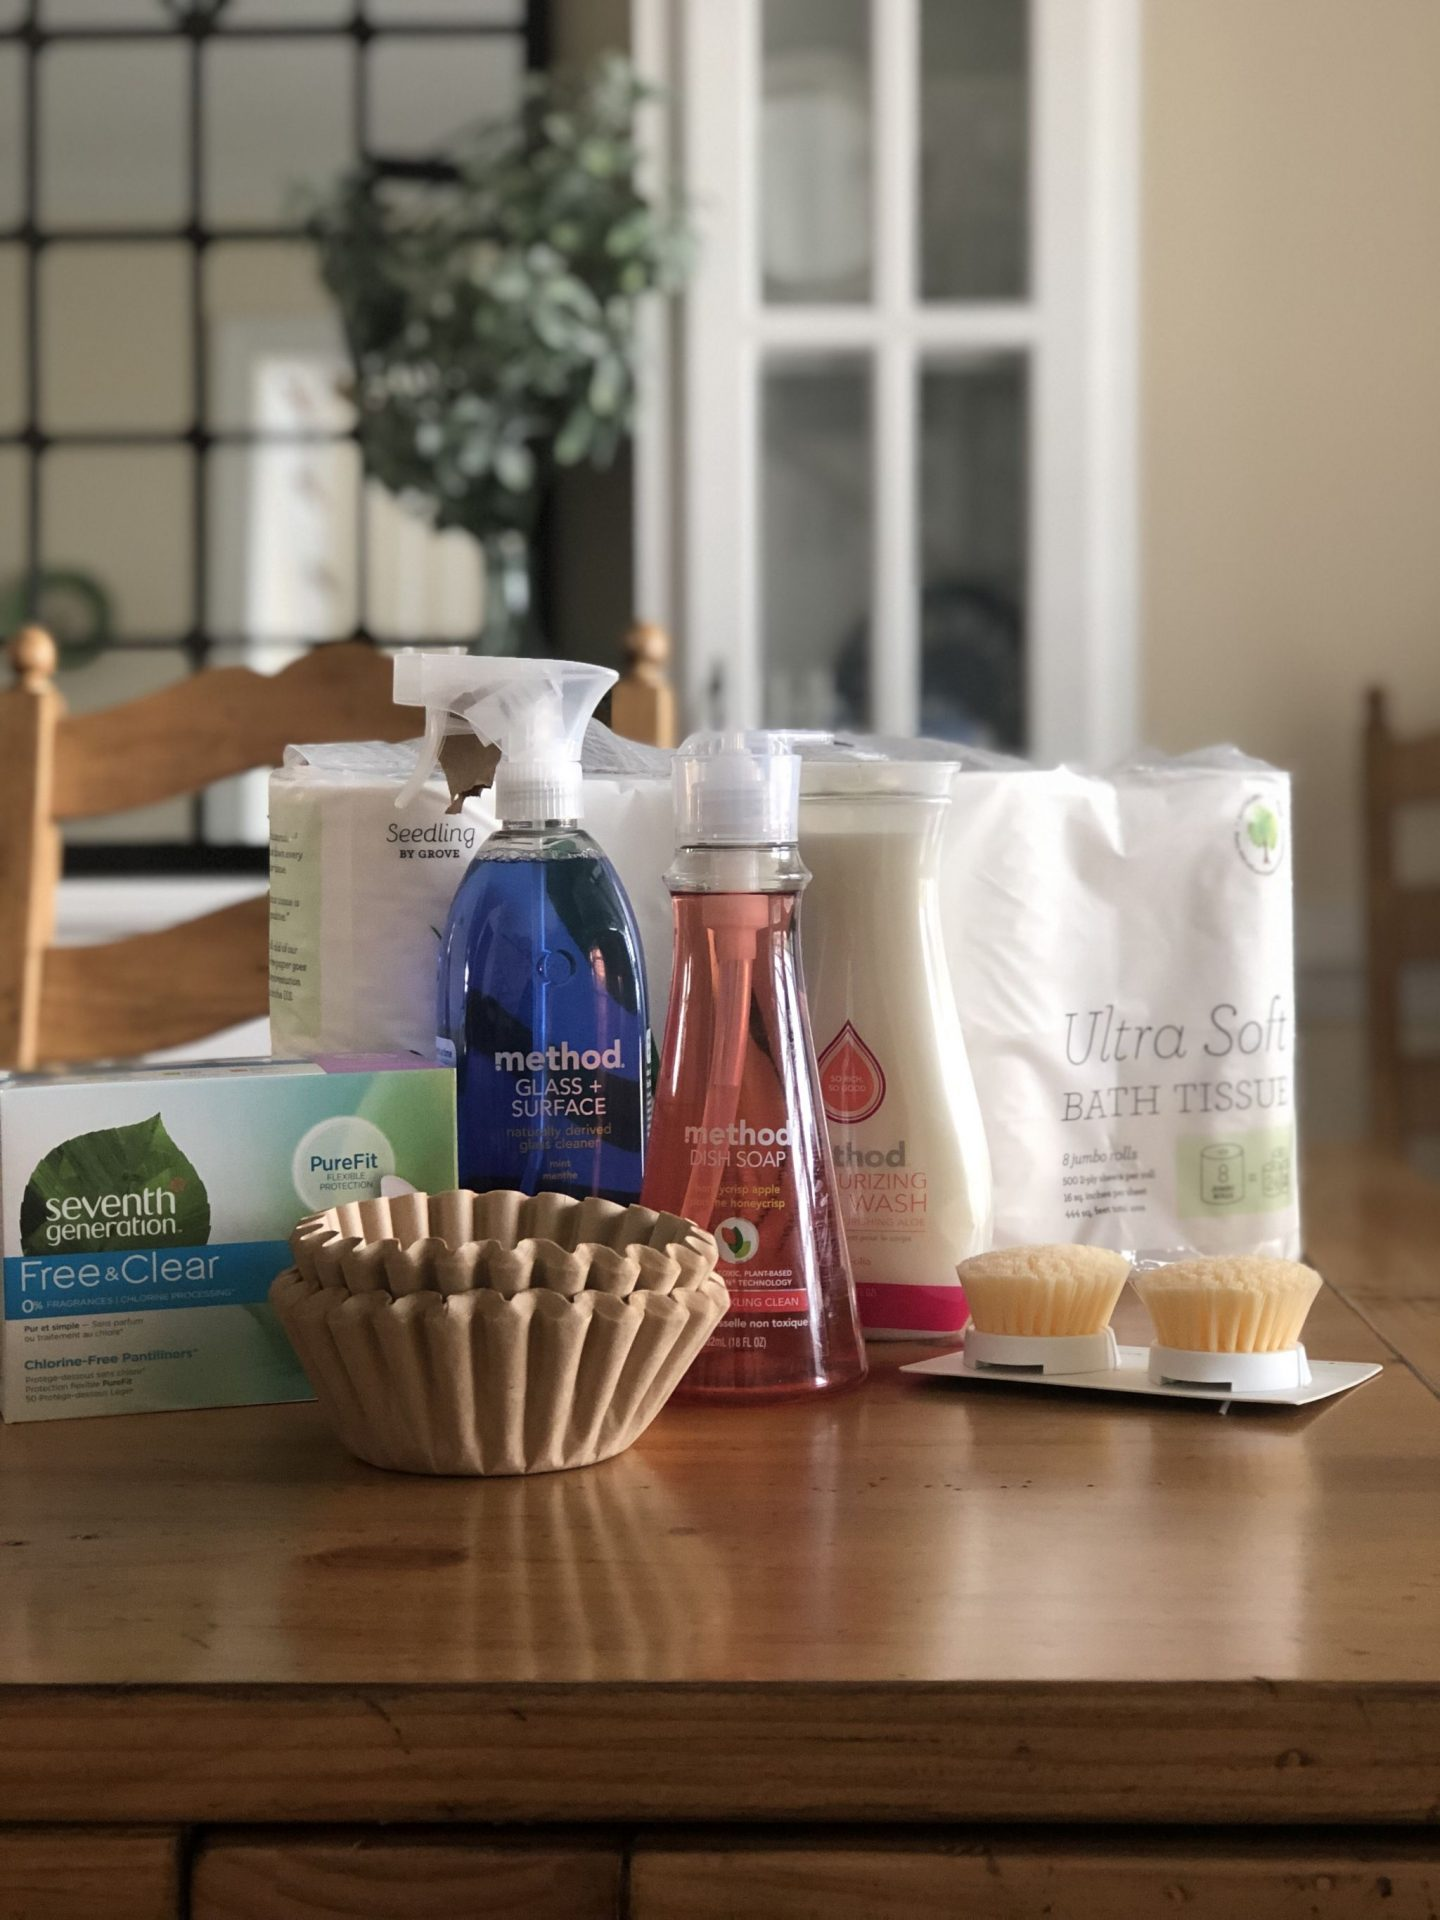 North Carolina blogger Rebecca Lately shares her Grove Collaborative February 2019 order, with a special offer for new members!